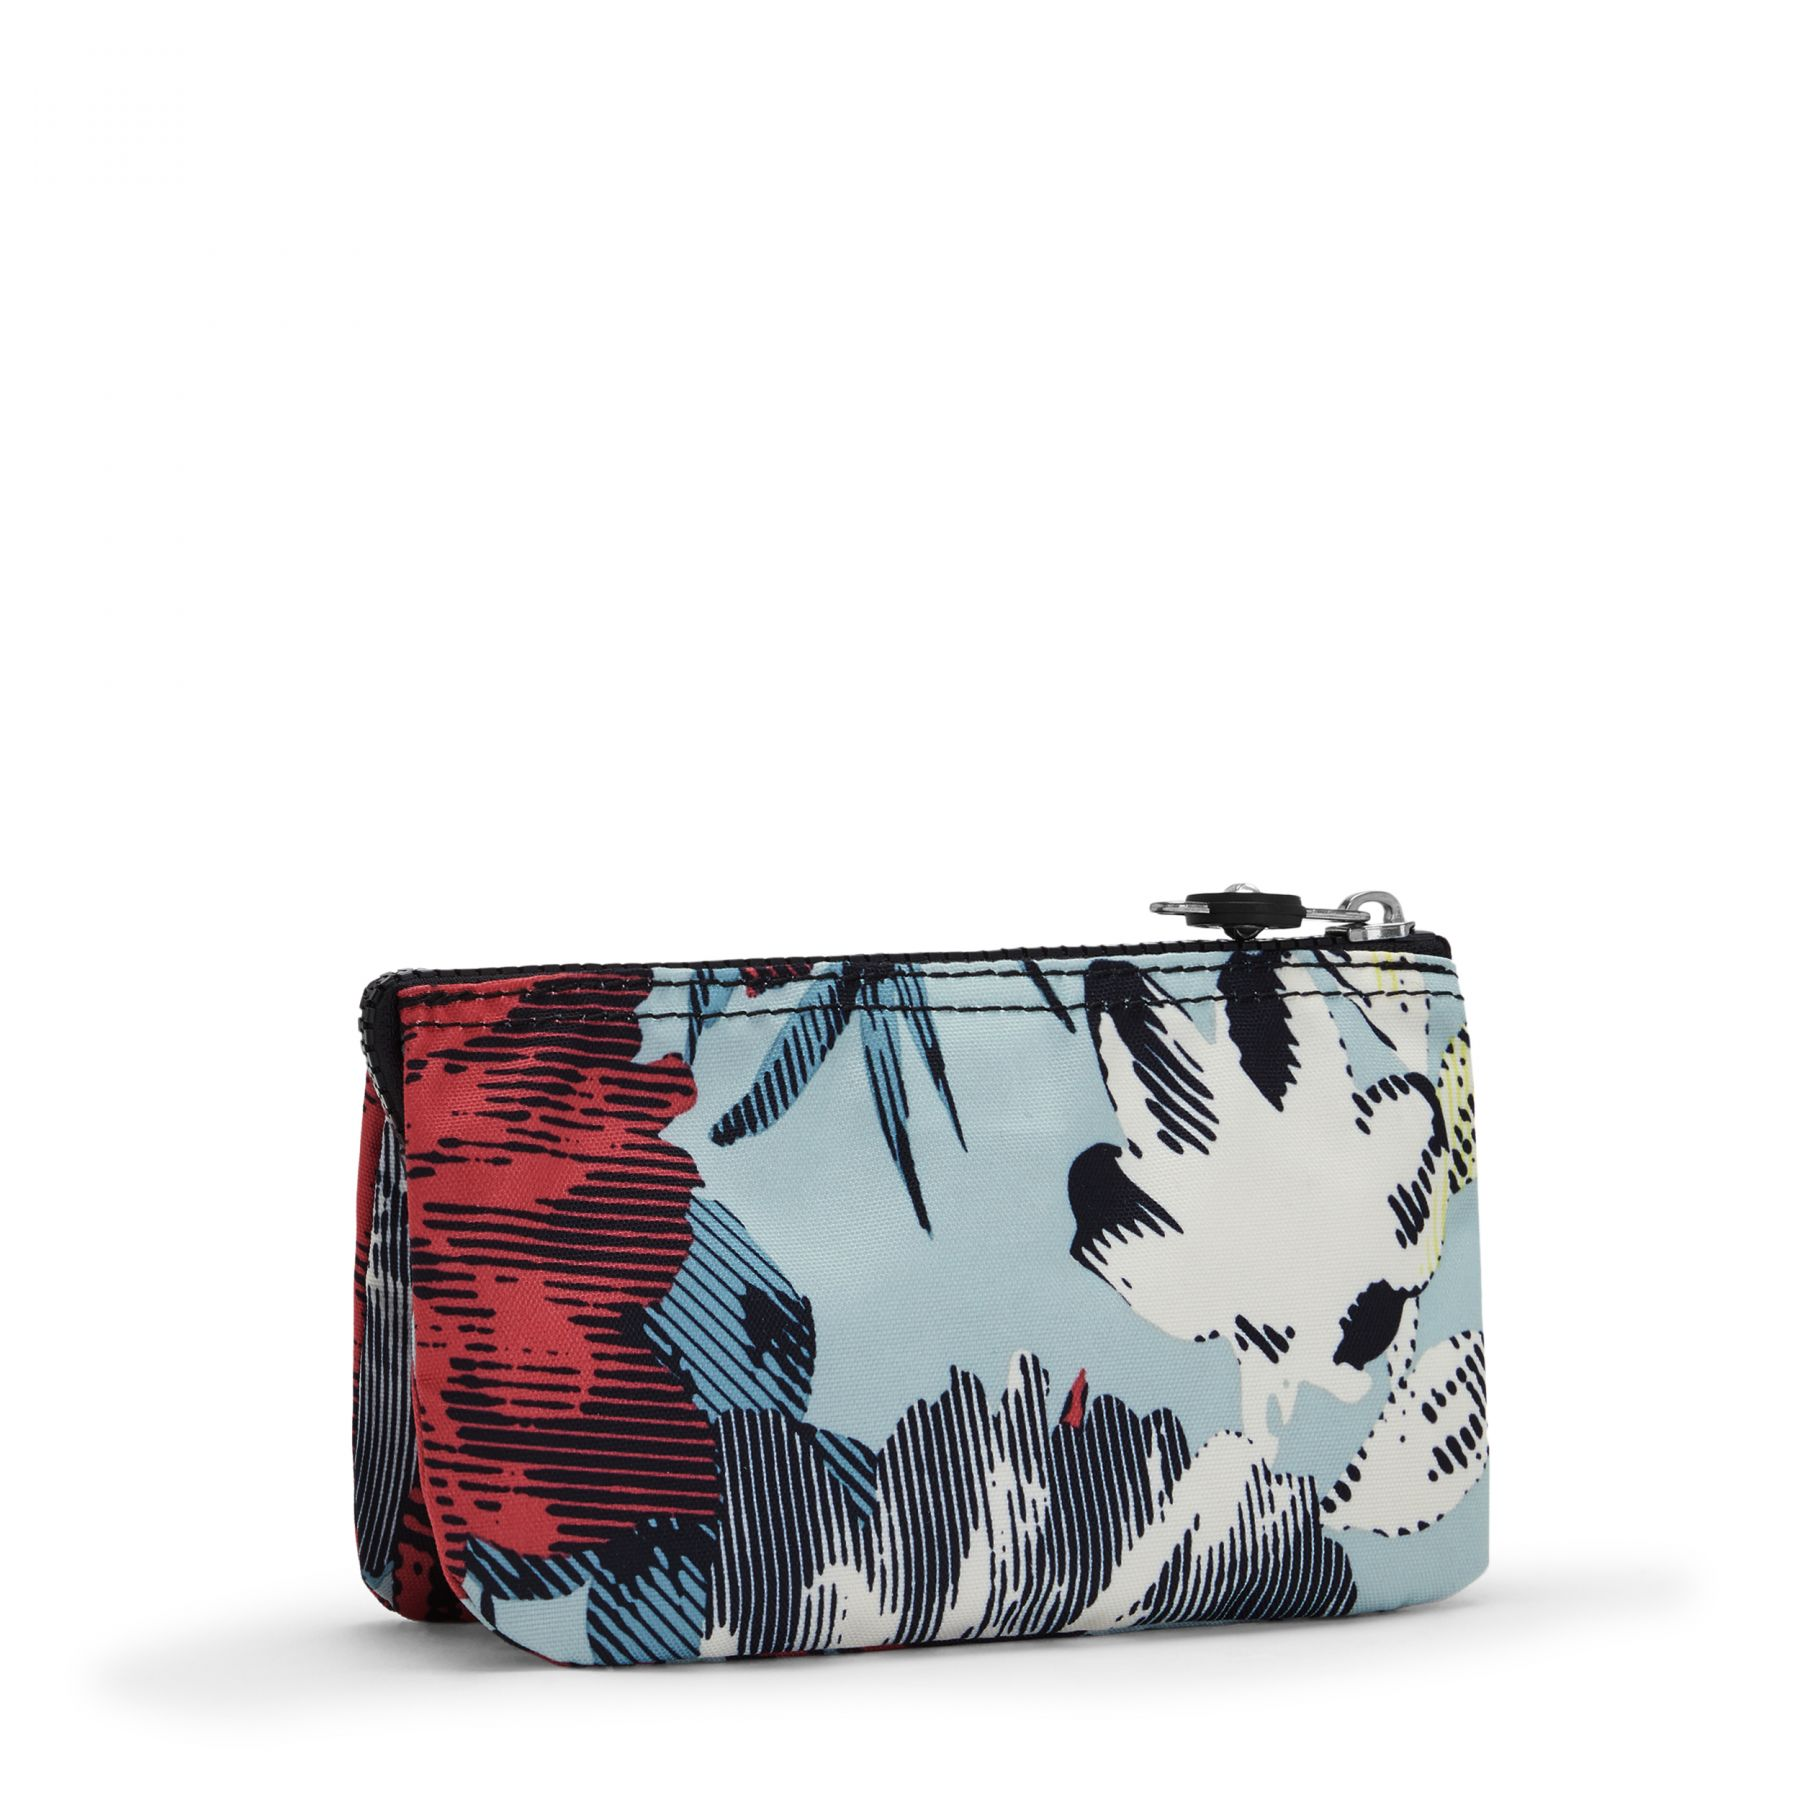 CREATIVITY L ACCESSORIES by Kipling - Back view